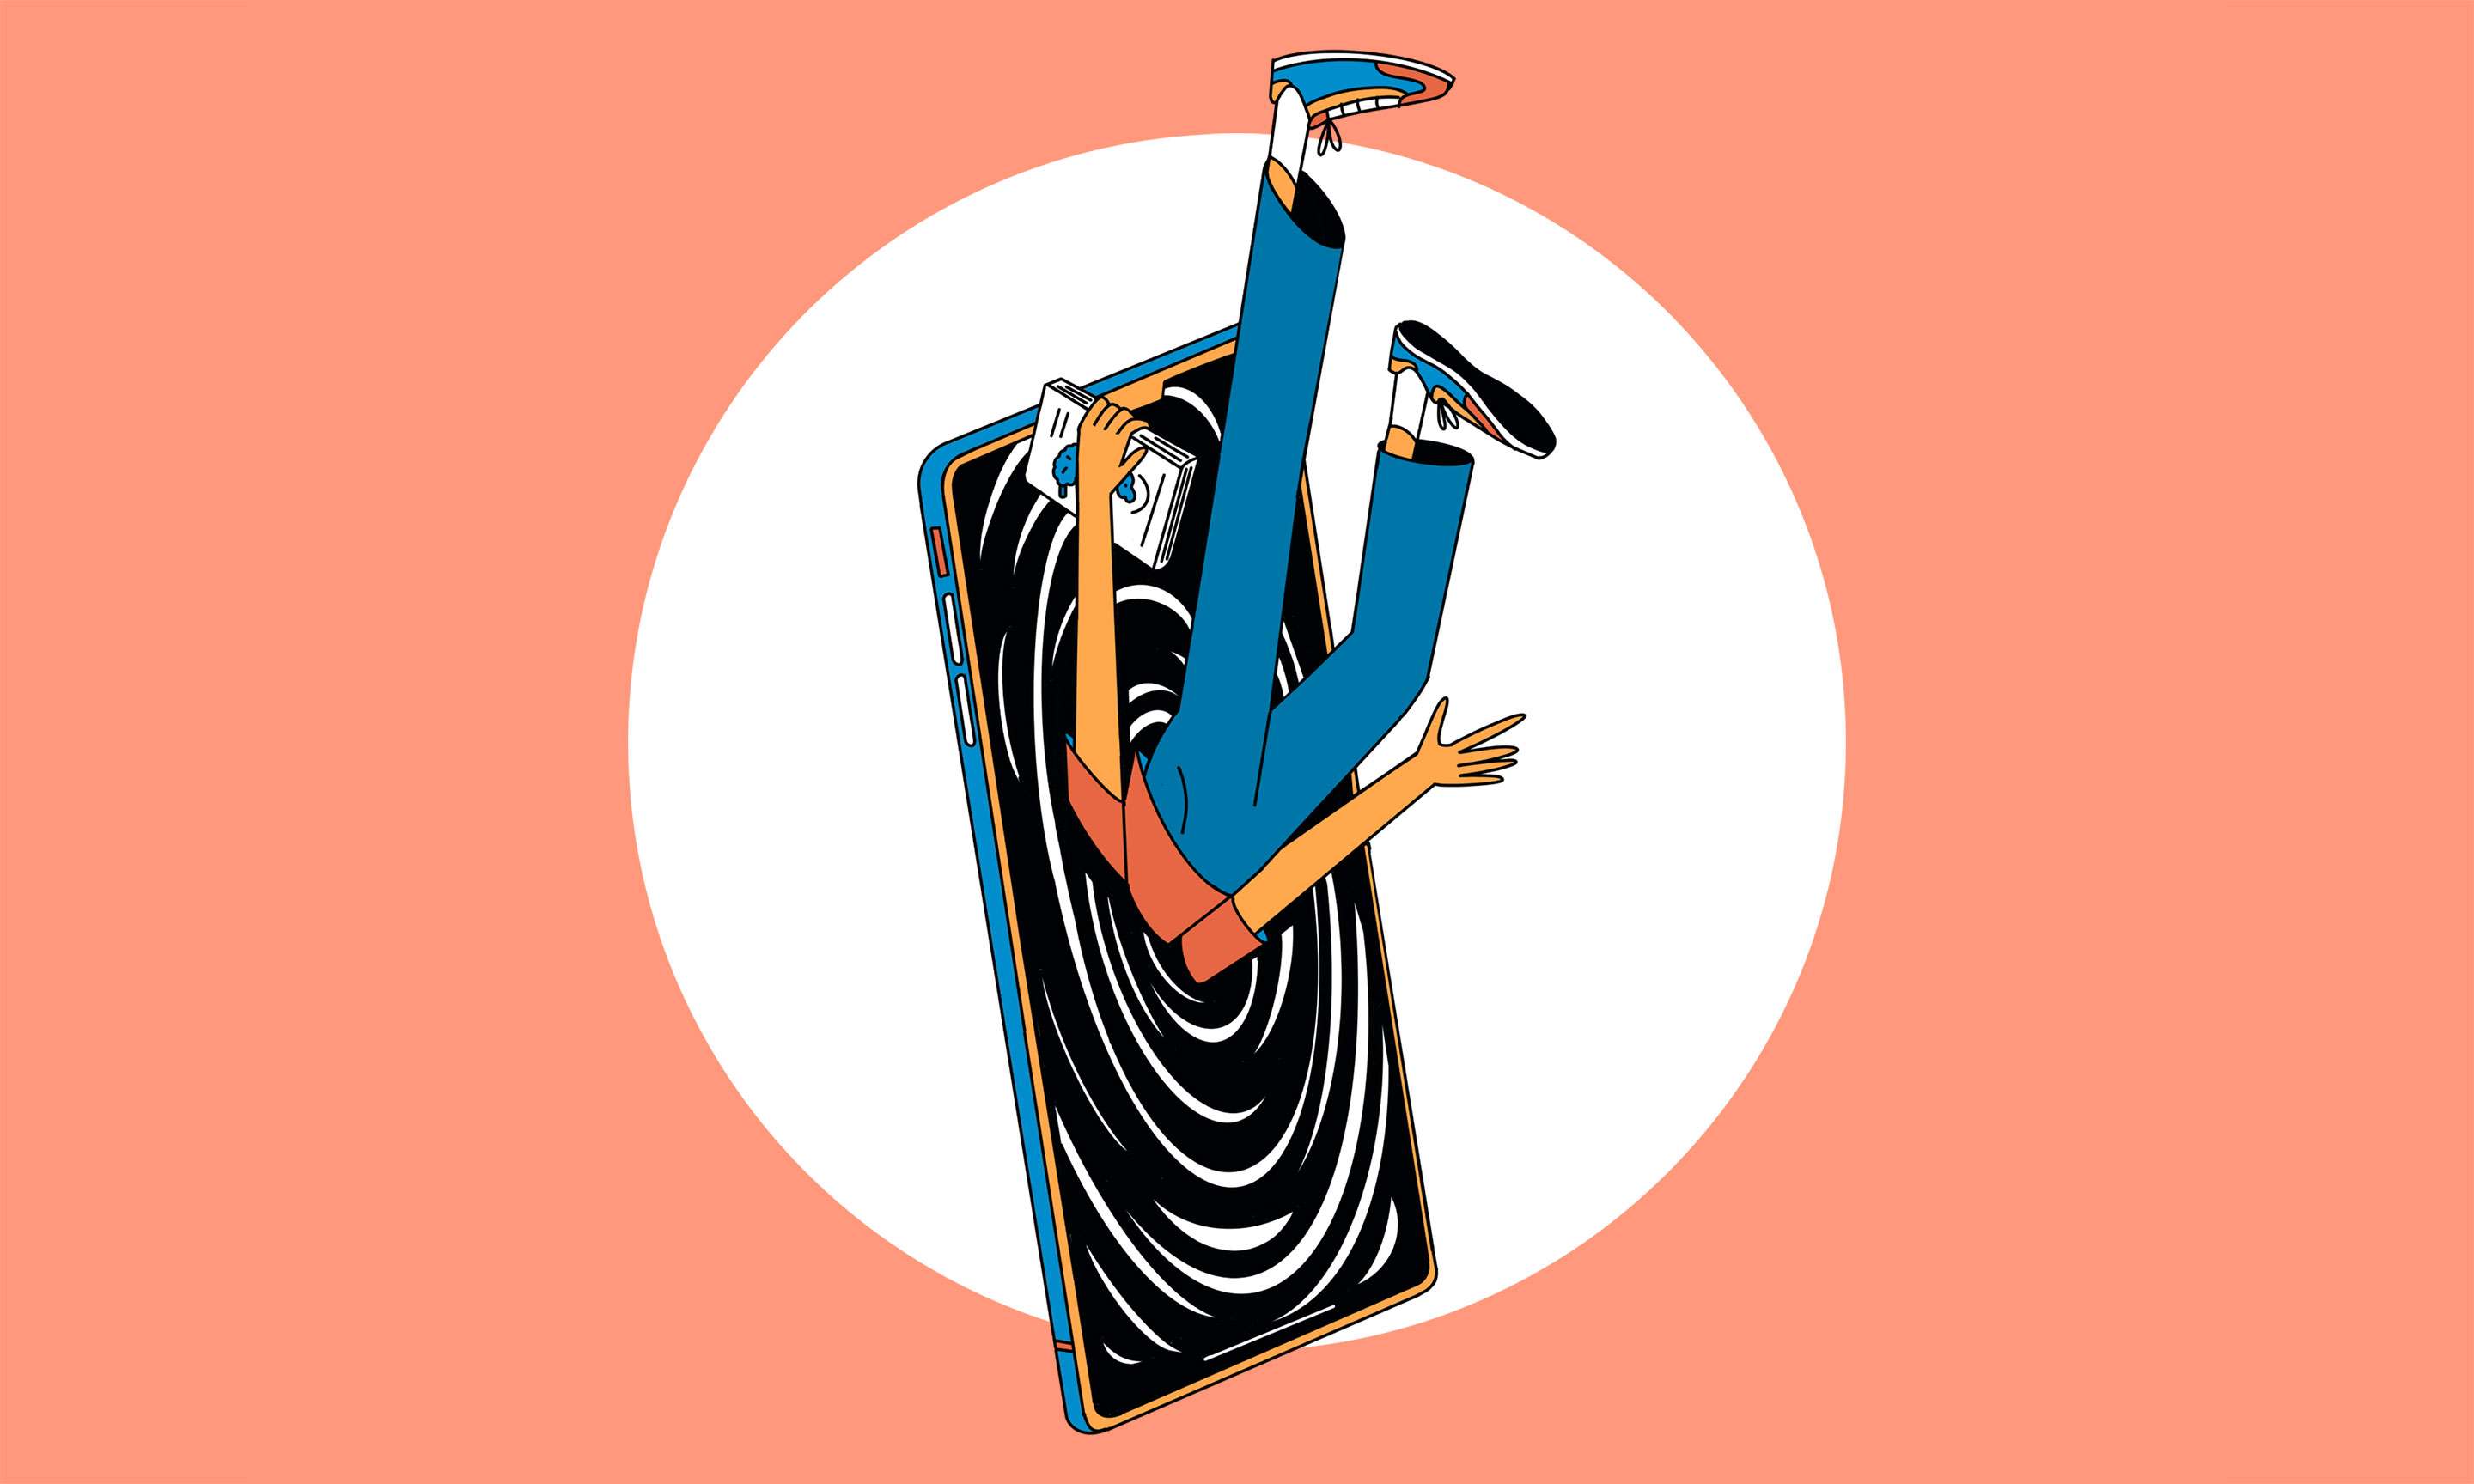 Illustration of a person being sucked into a mobile phone.